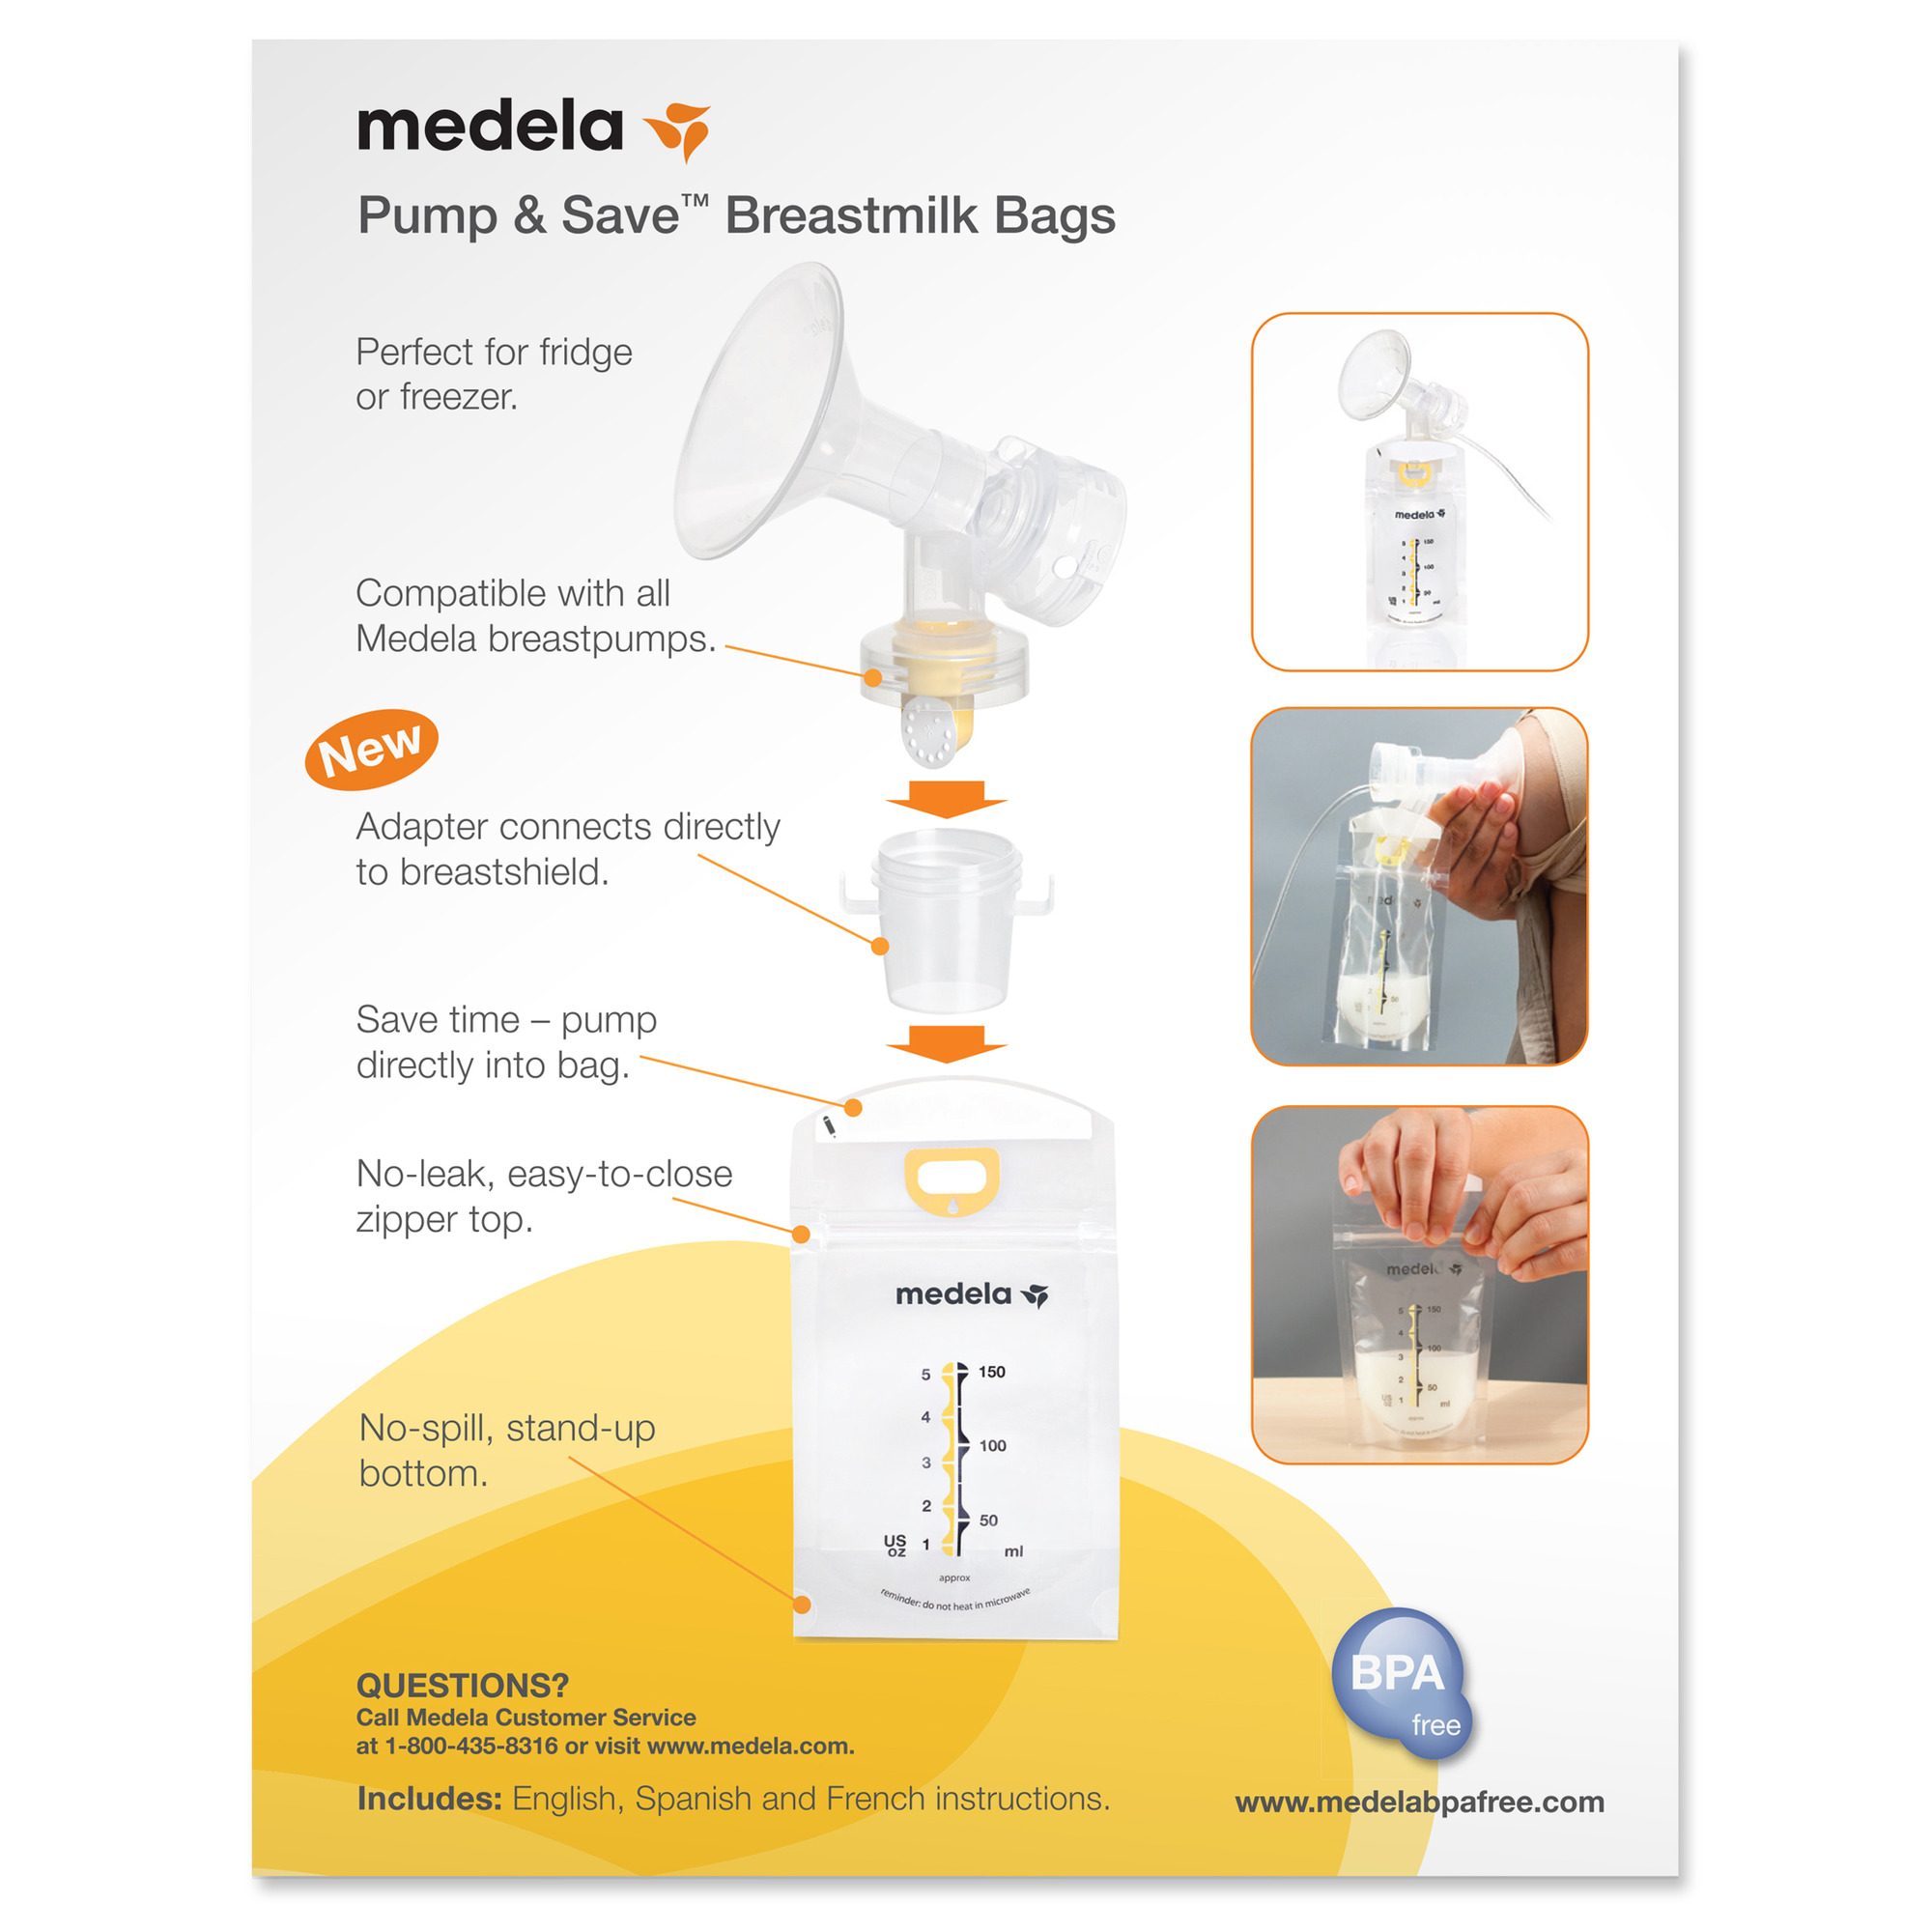 medela pump and save bags review